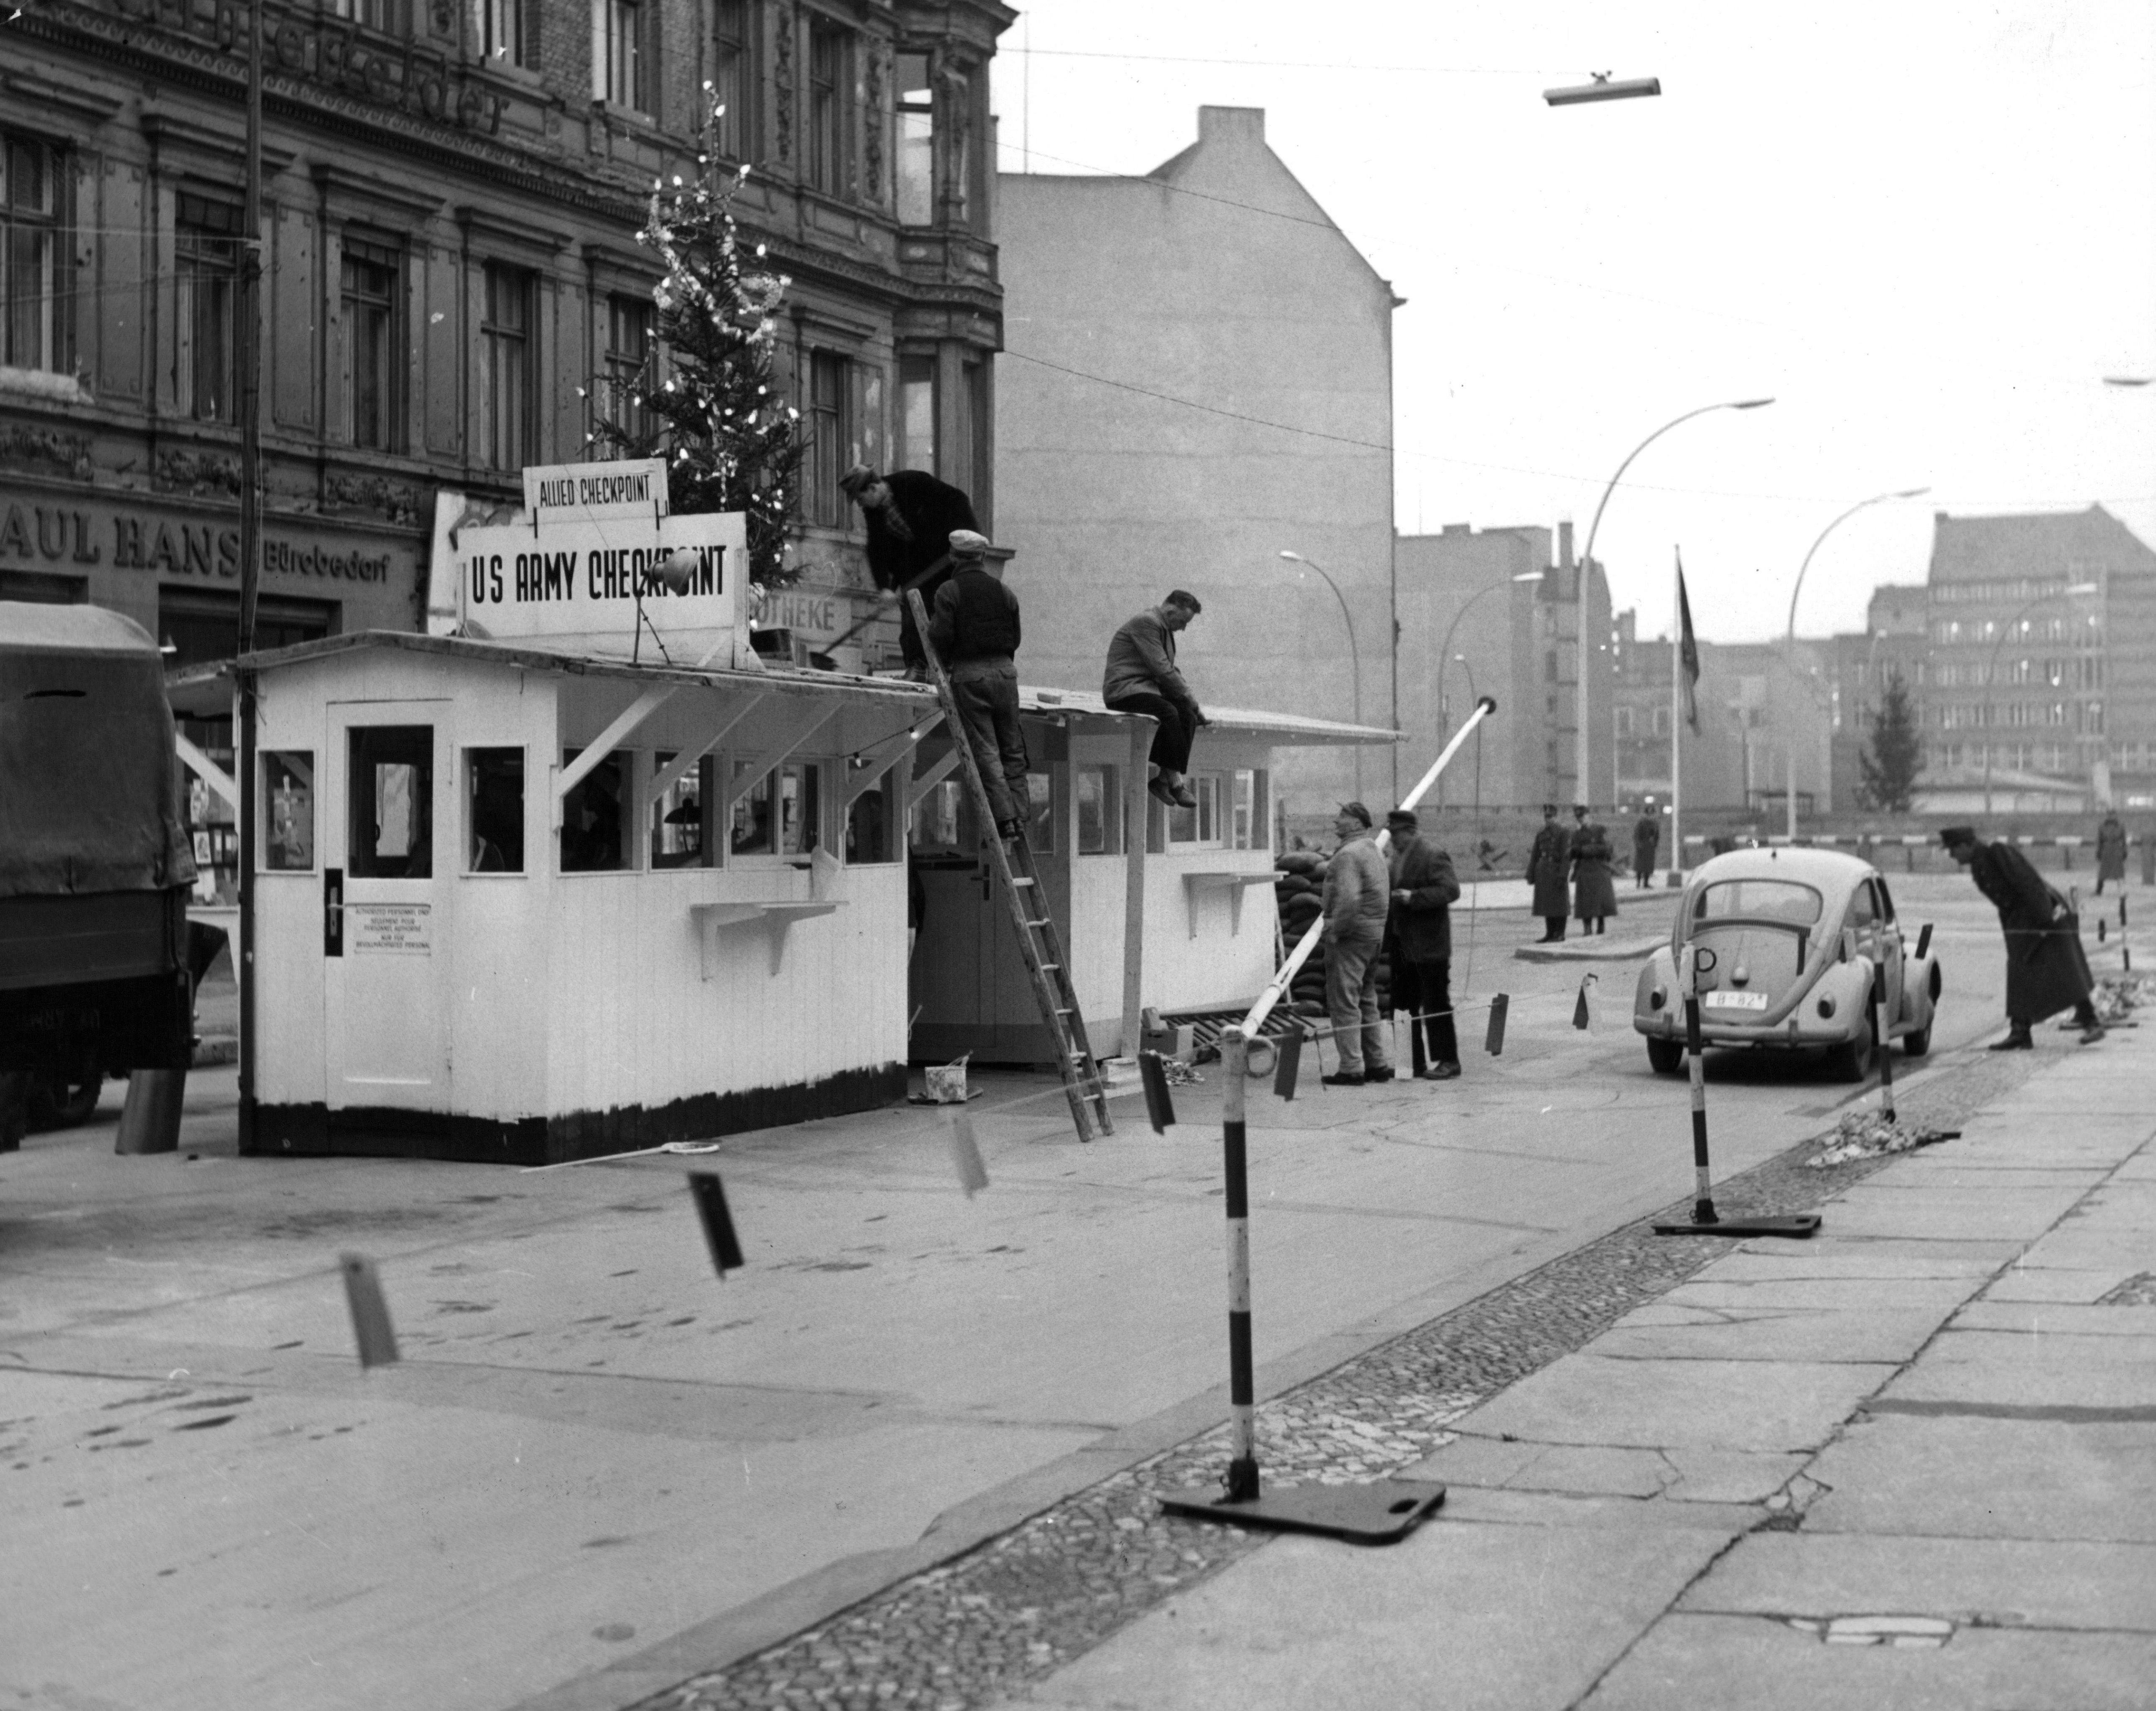 Men decorating a tree for Christmas at Checkpoint Charlie in Berlin